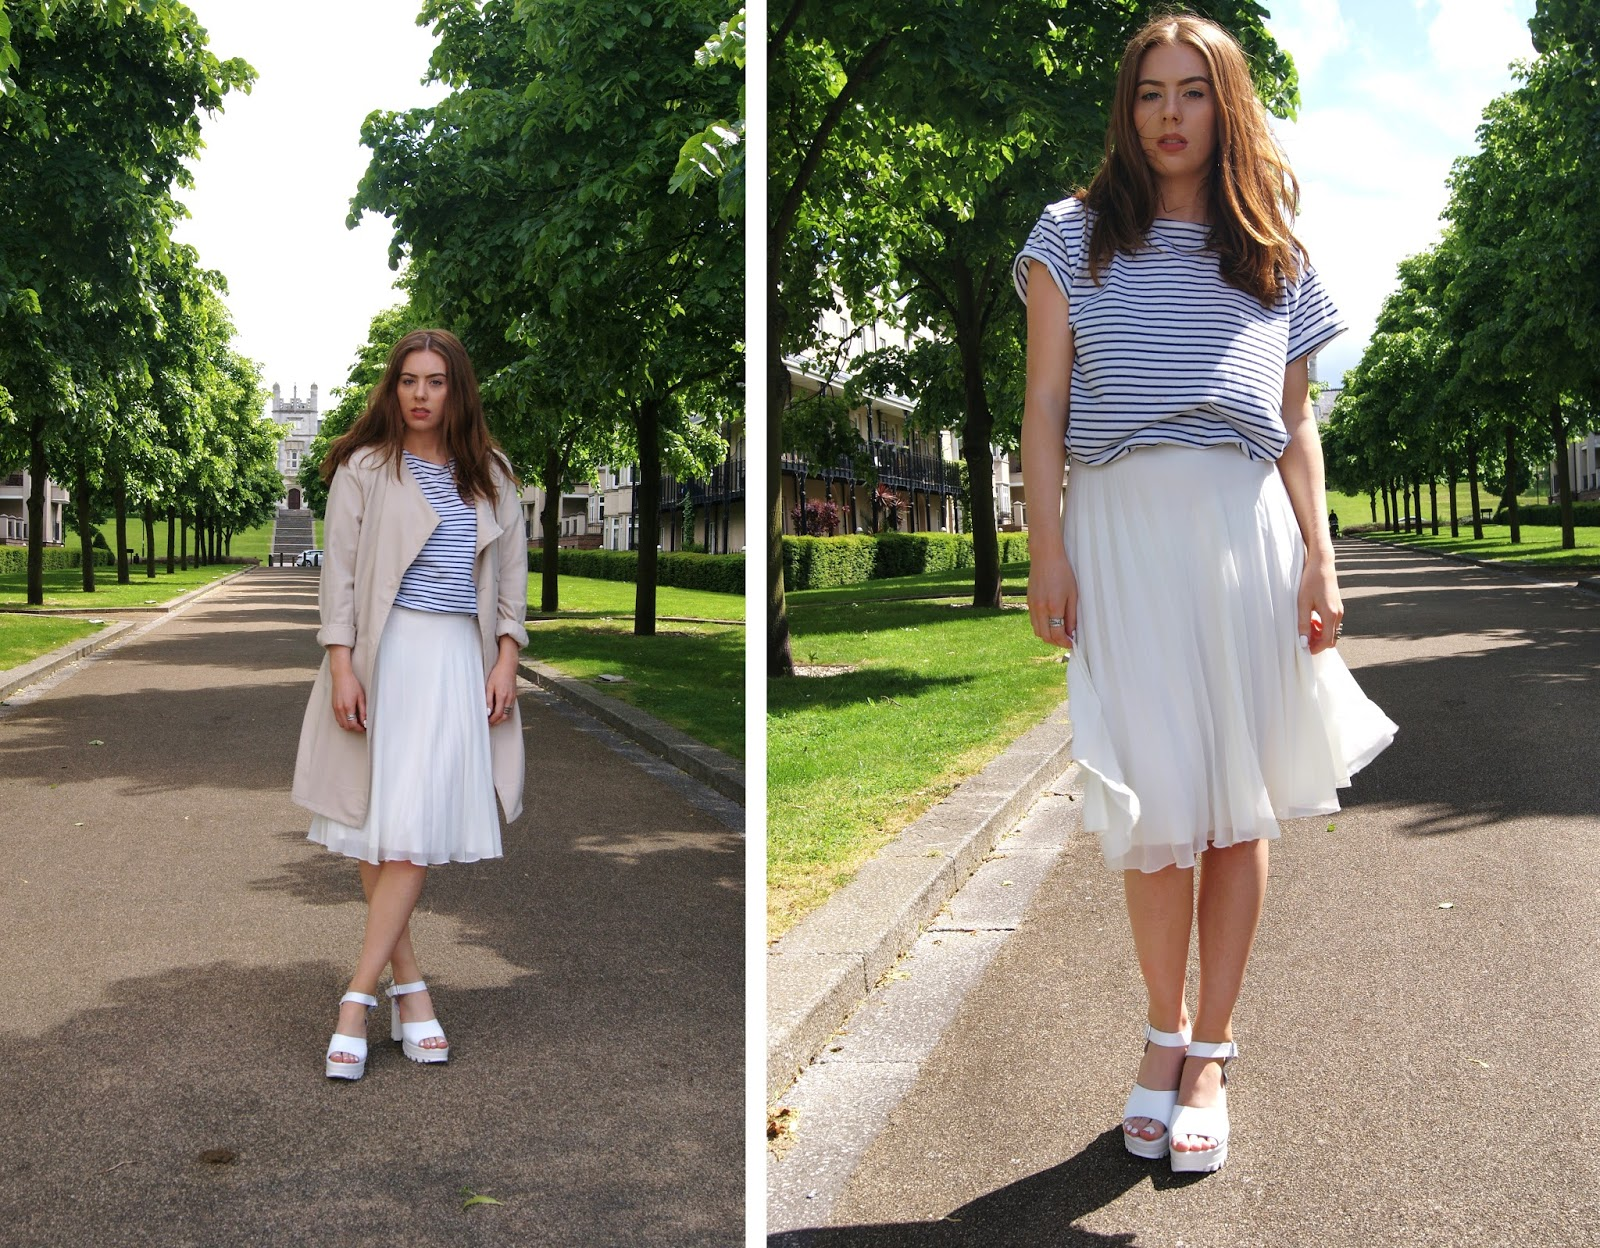 OUTFIT / BOAT PARTY | THE GOODOWL | UK FASHION & LIFESTYLE BLOG